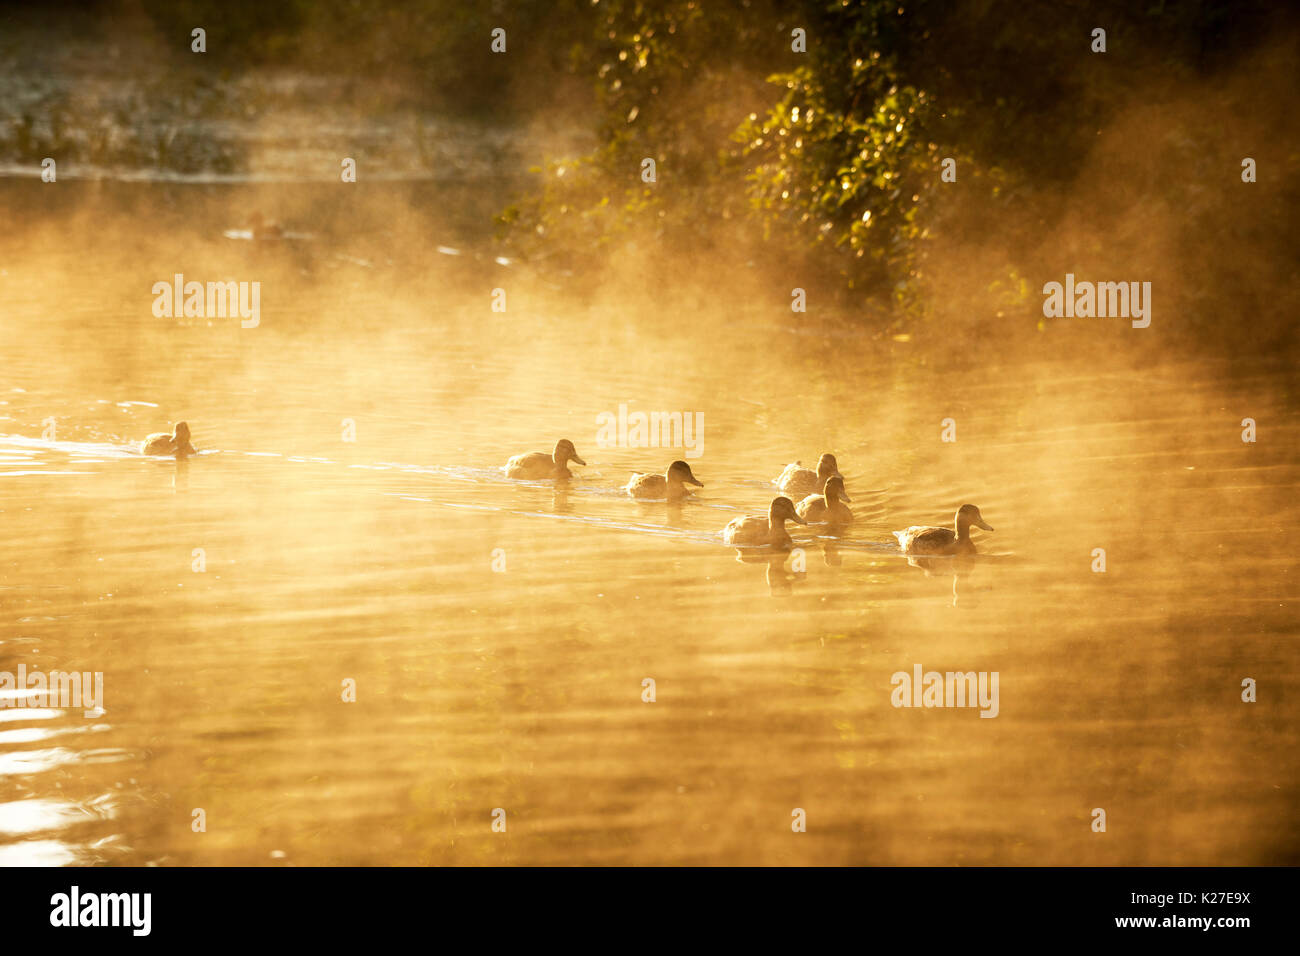 ducks swimming in a river - Stock Image